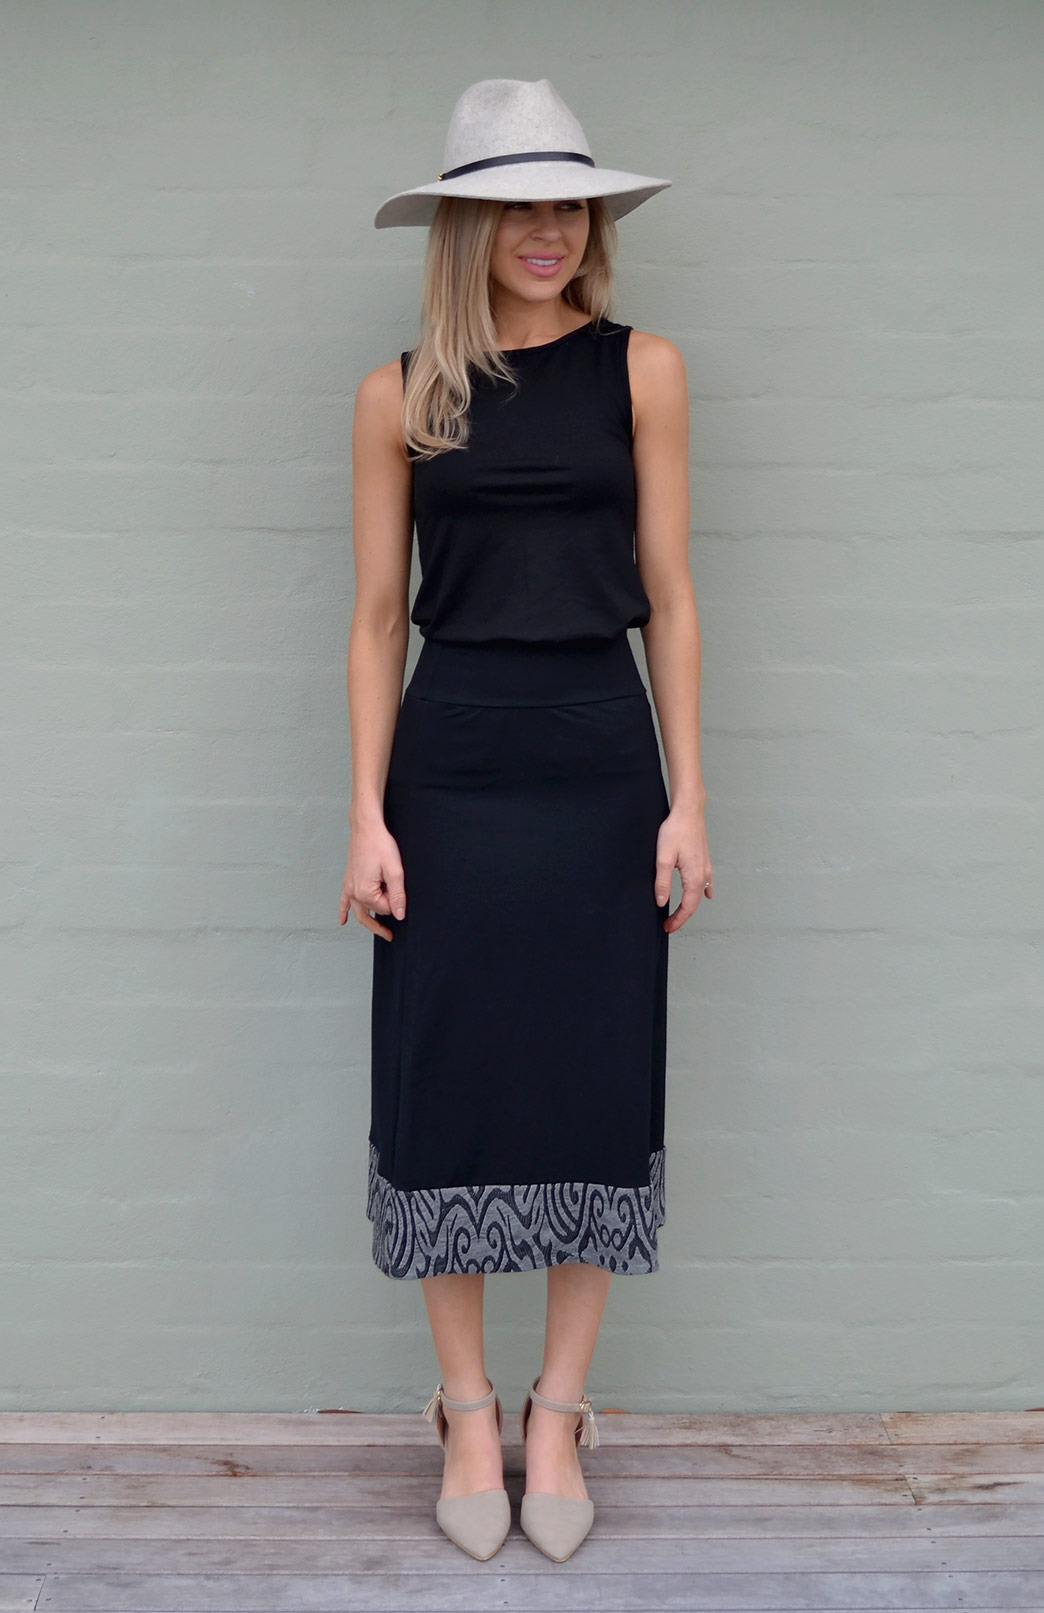 Midi Skirt - Women's Black and Grey A-Line Wool Summer Skirt - Smitten Merino Tasmania Australia